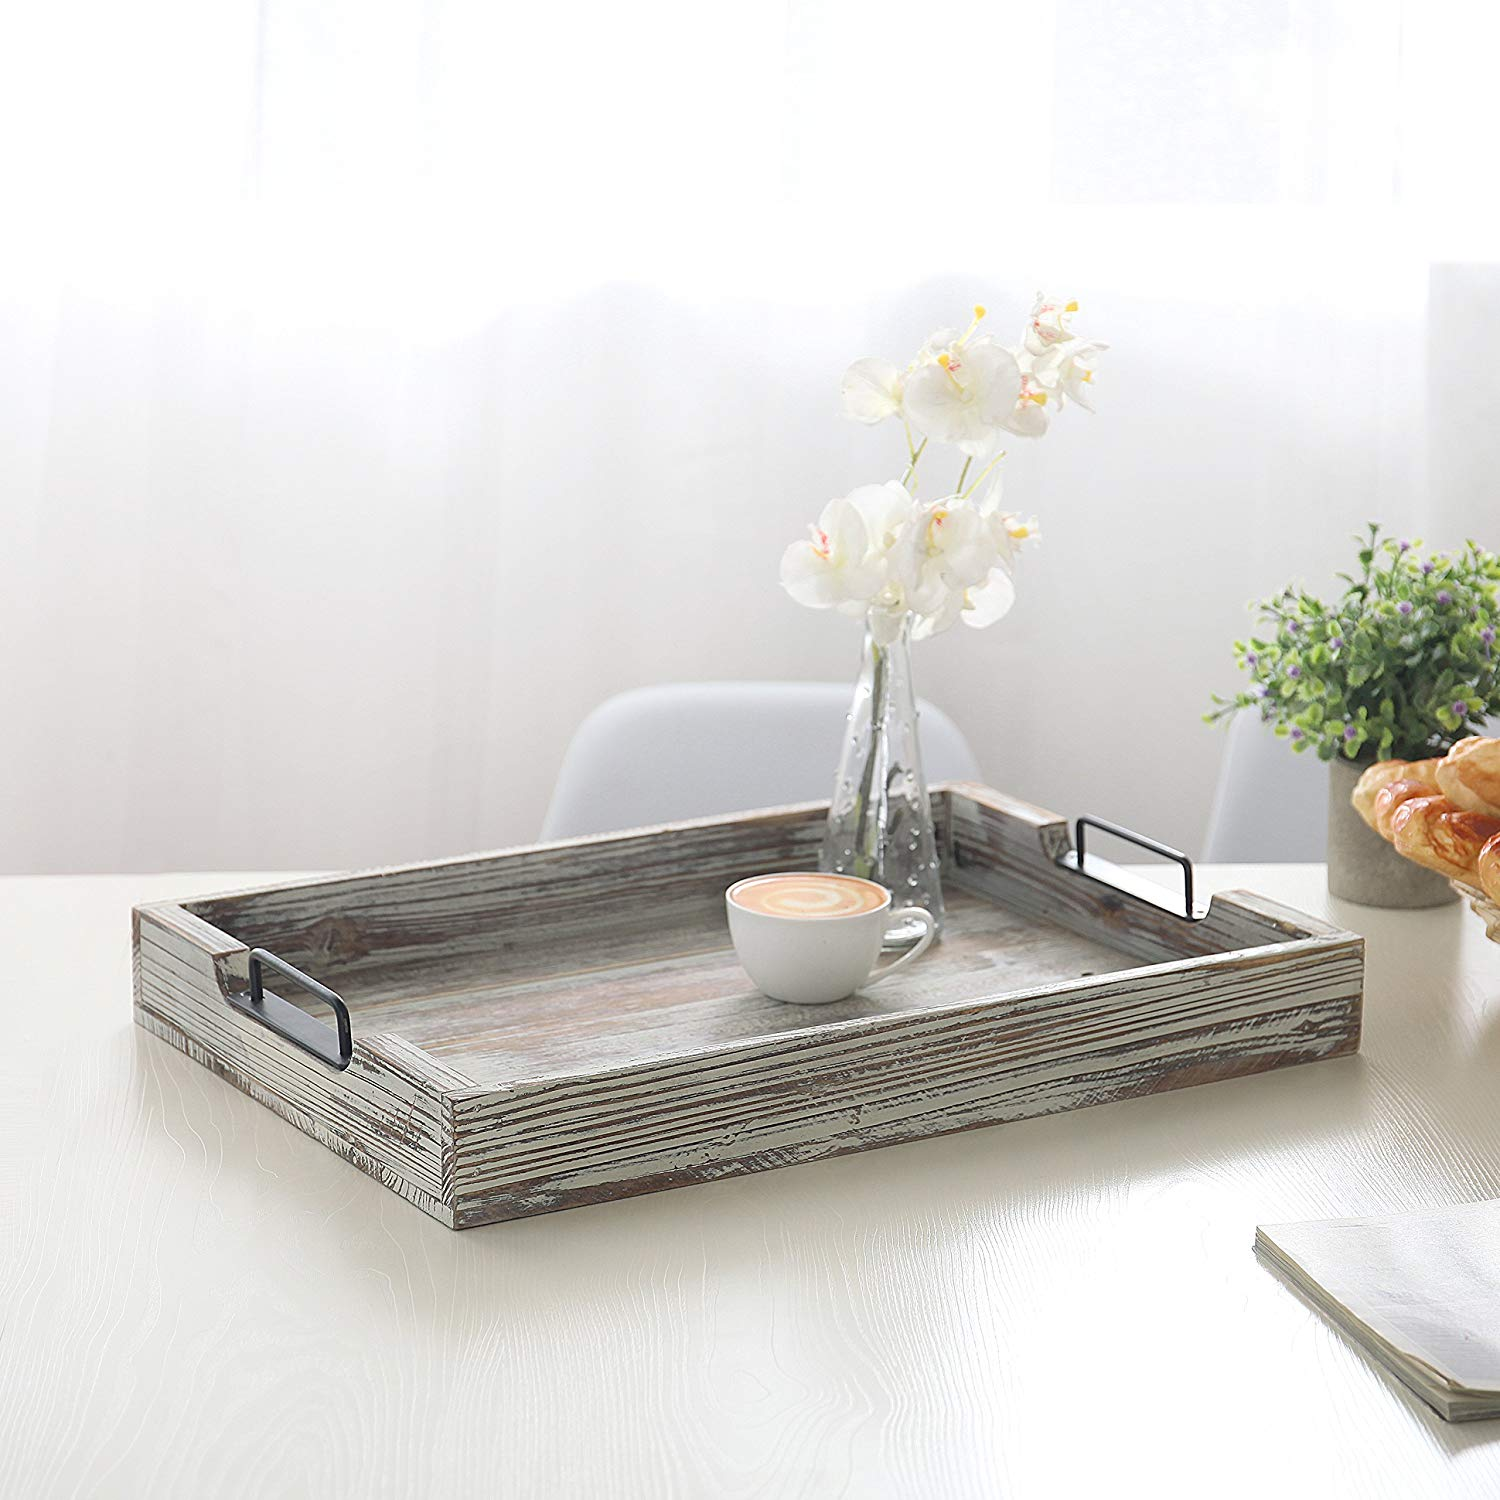 Torched Wood 20-Inch Serving Tray with Modern Black Metal Handles